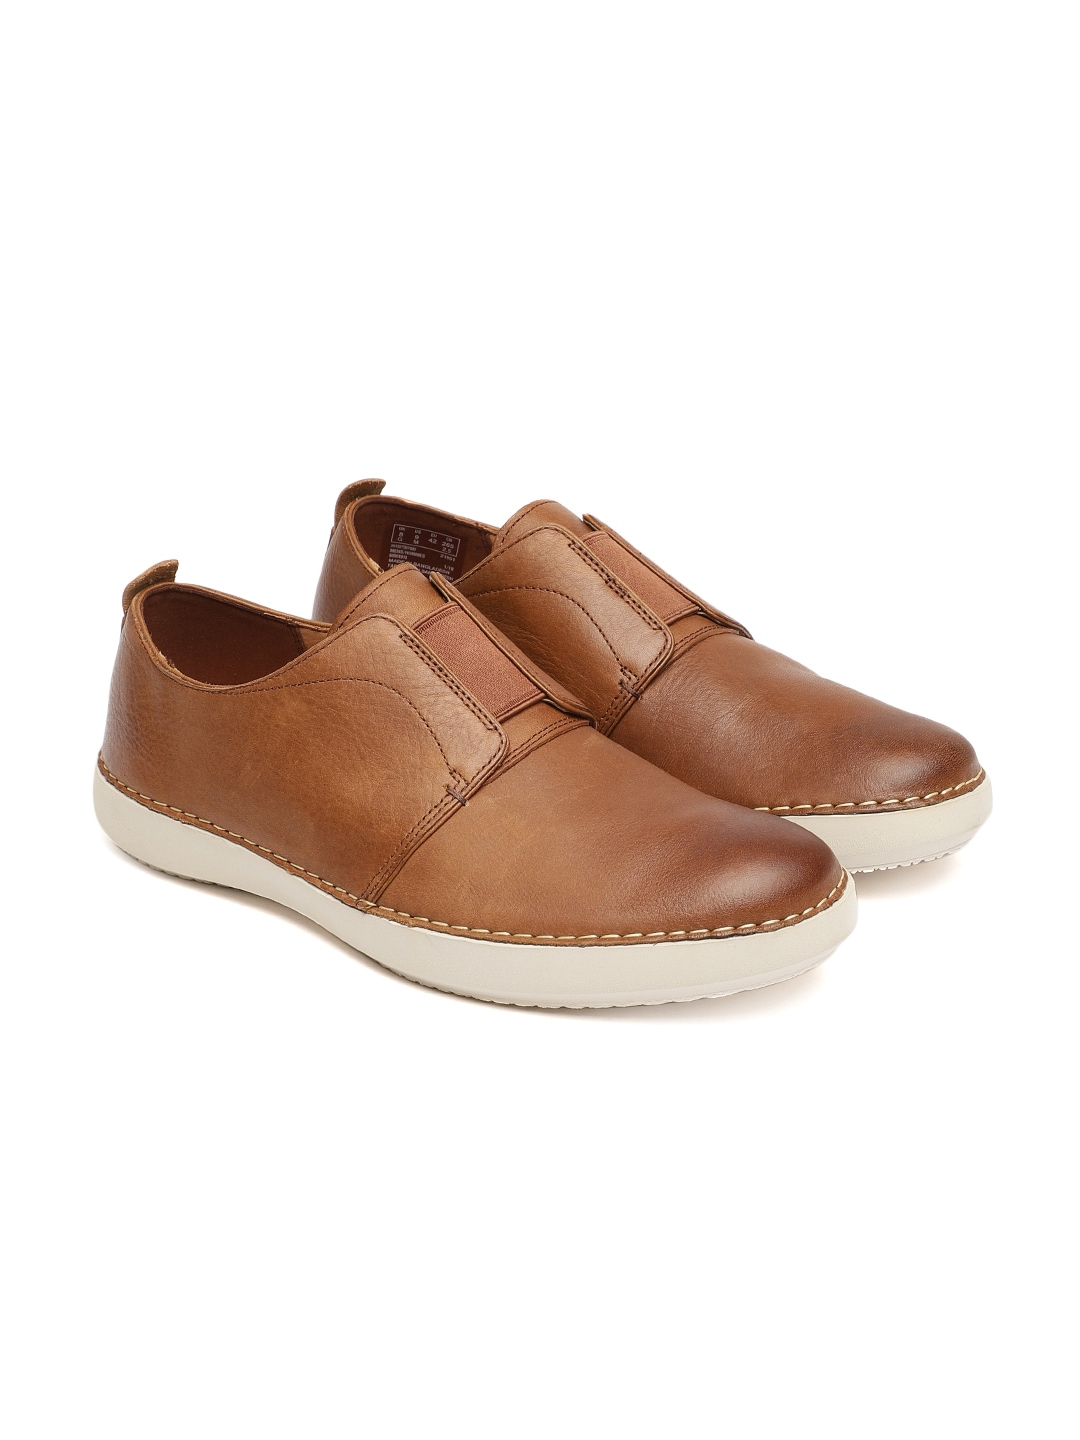 831e9208134c CLARKS - Exclusive Clarks Shoes Online Store in India - Myntra